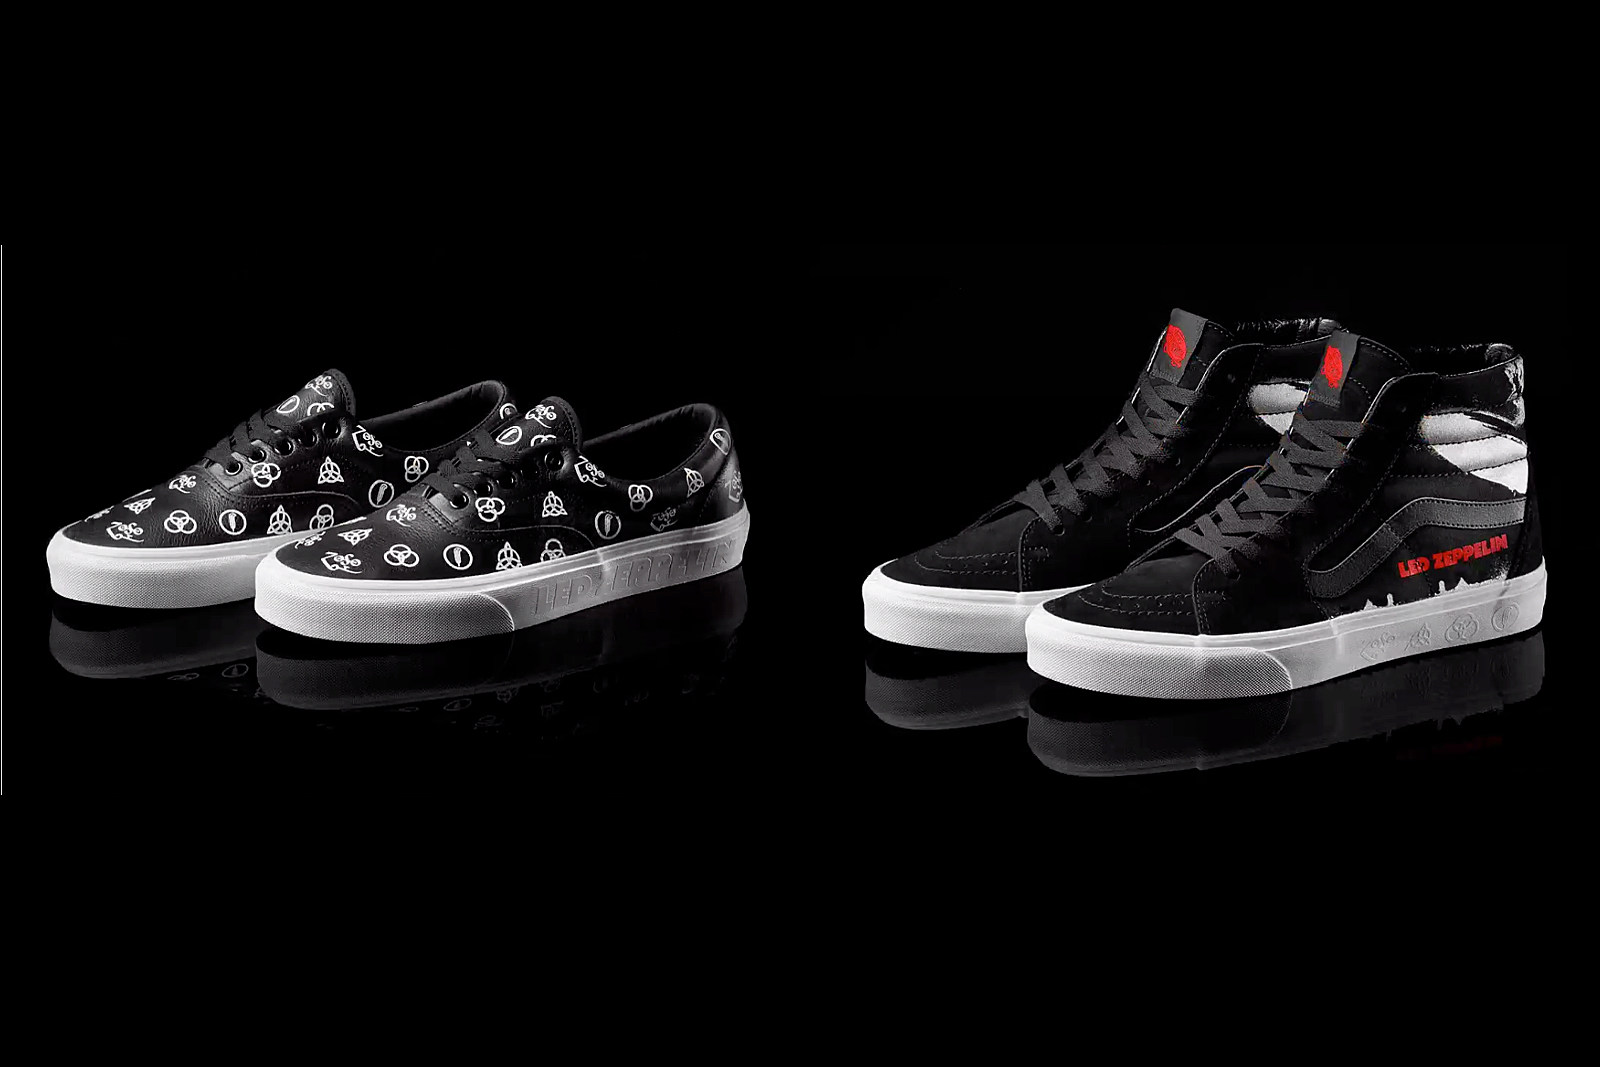 Led Zeppelin Announce New Vans Sneakers